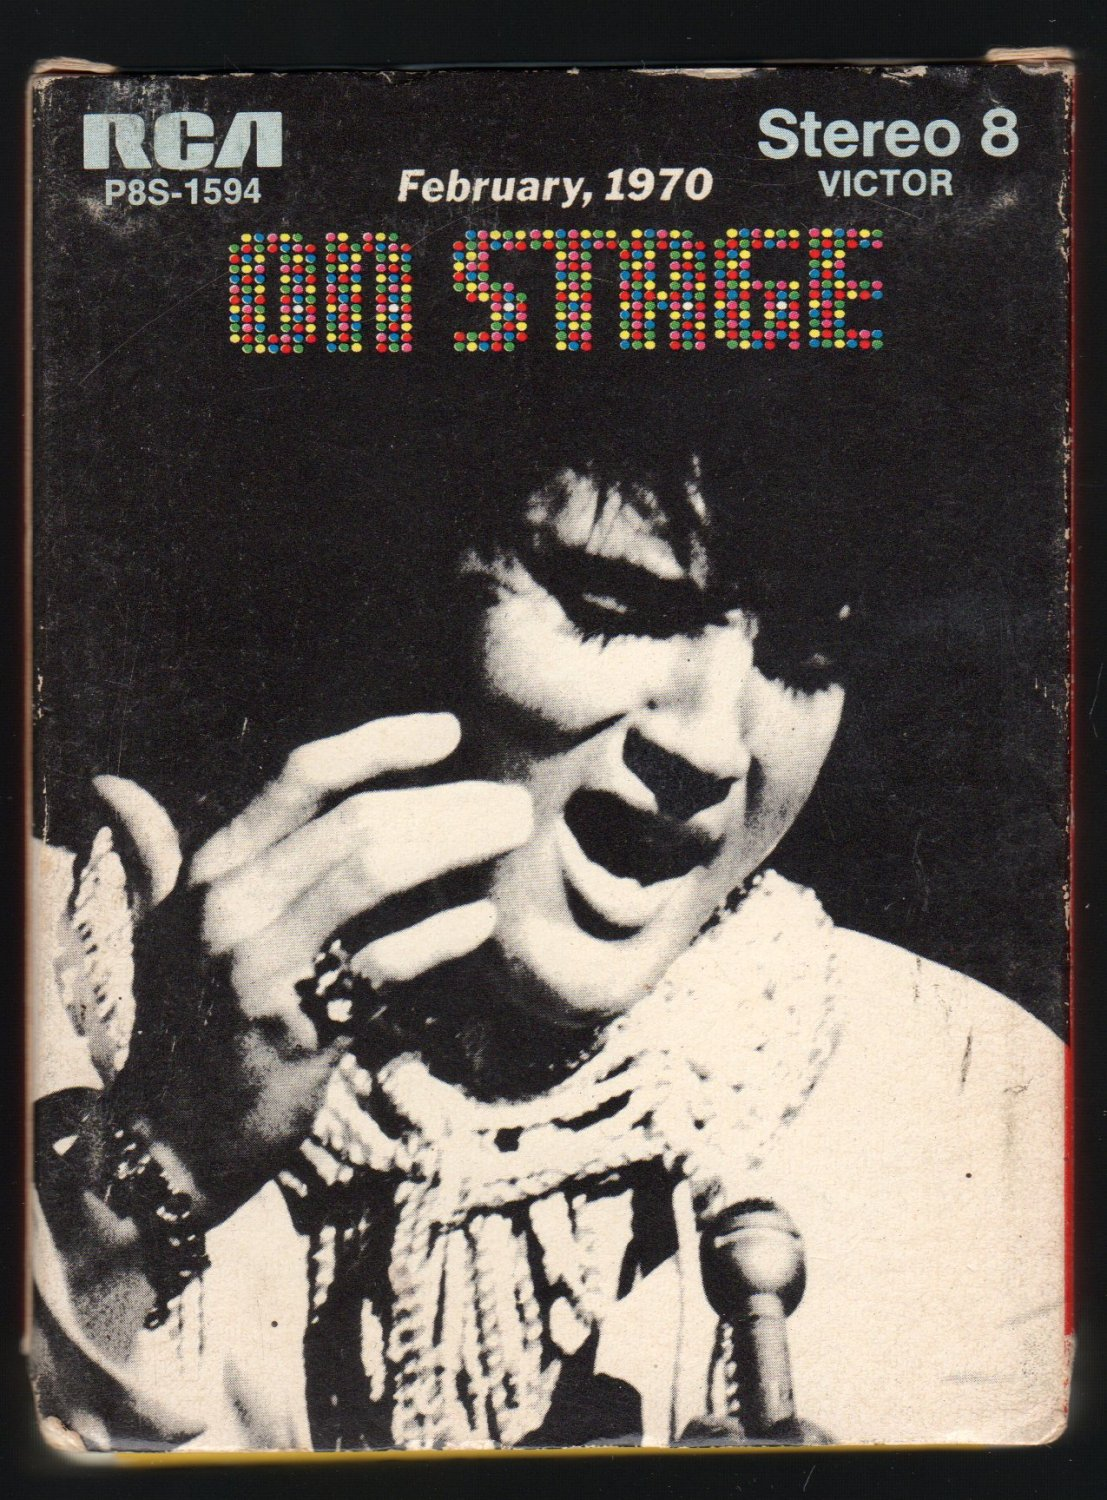 Elvis Presley - On Stage 1970 RCA A44 8-TRACK TAPE